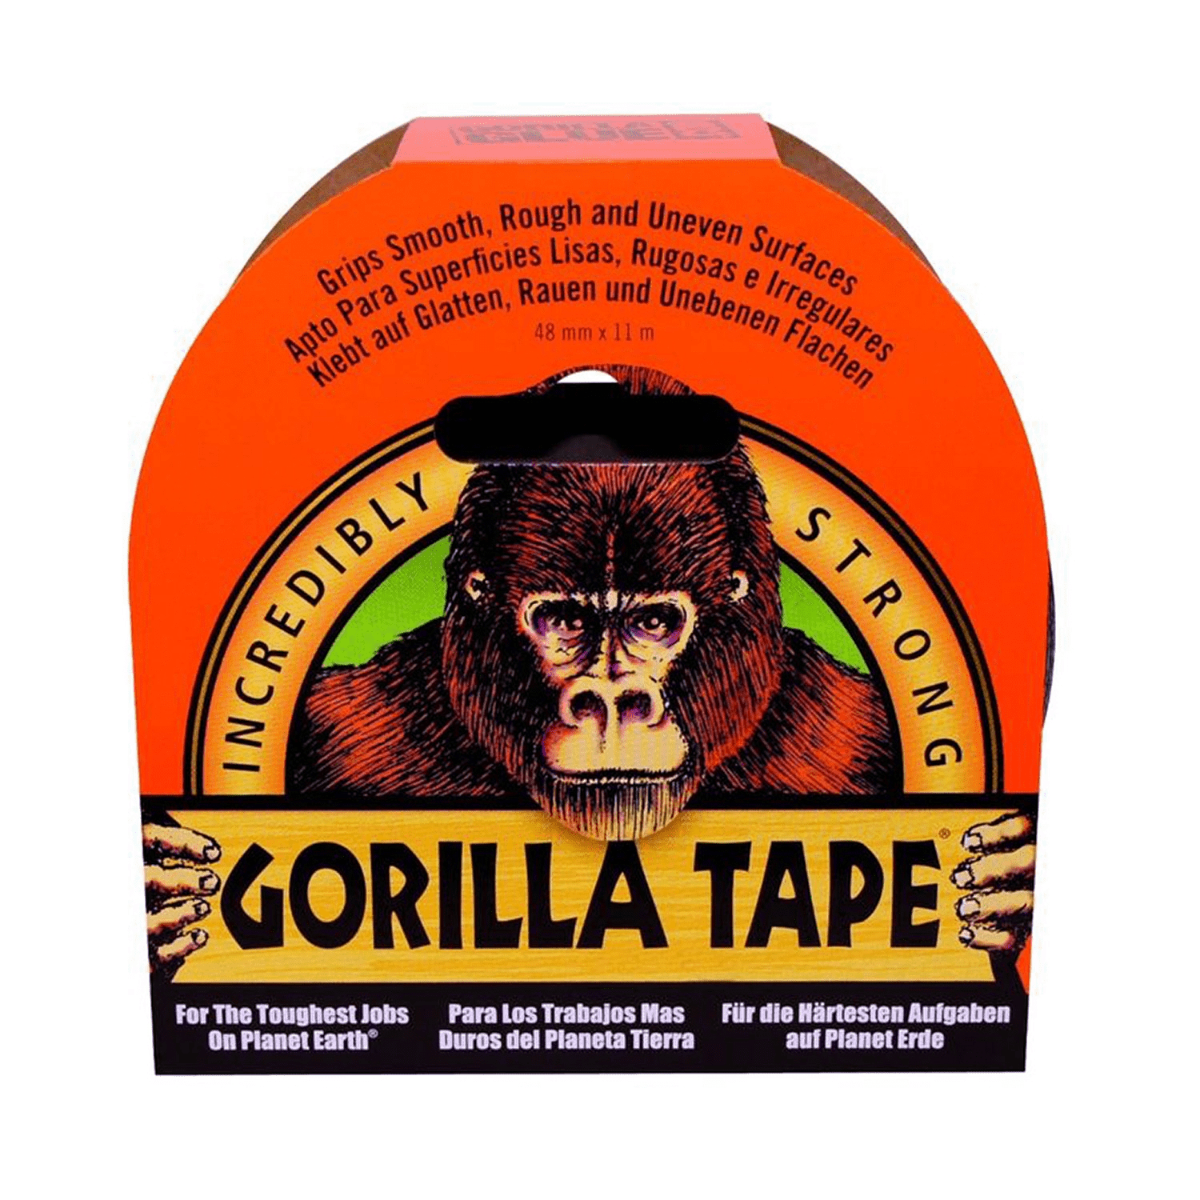 Gorilla Glue Black Tape, 48mmx11m